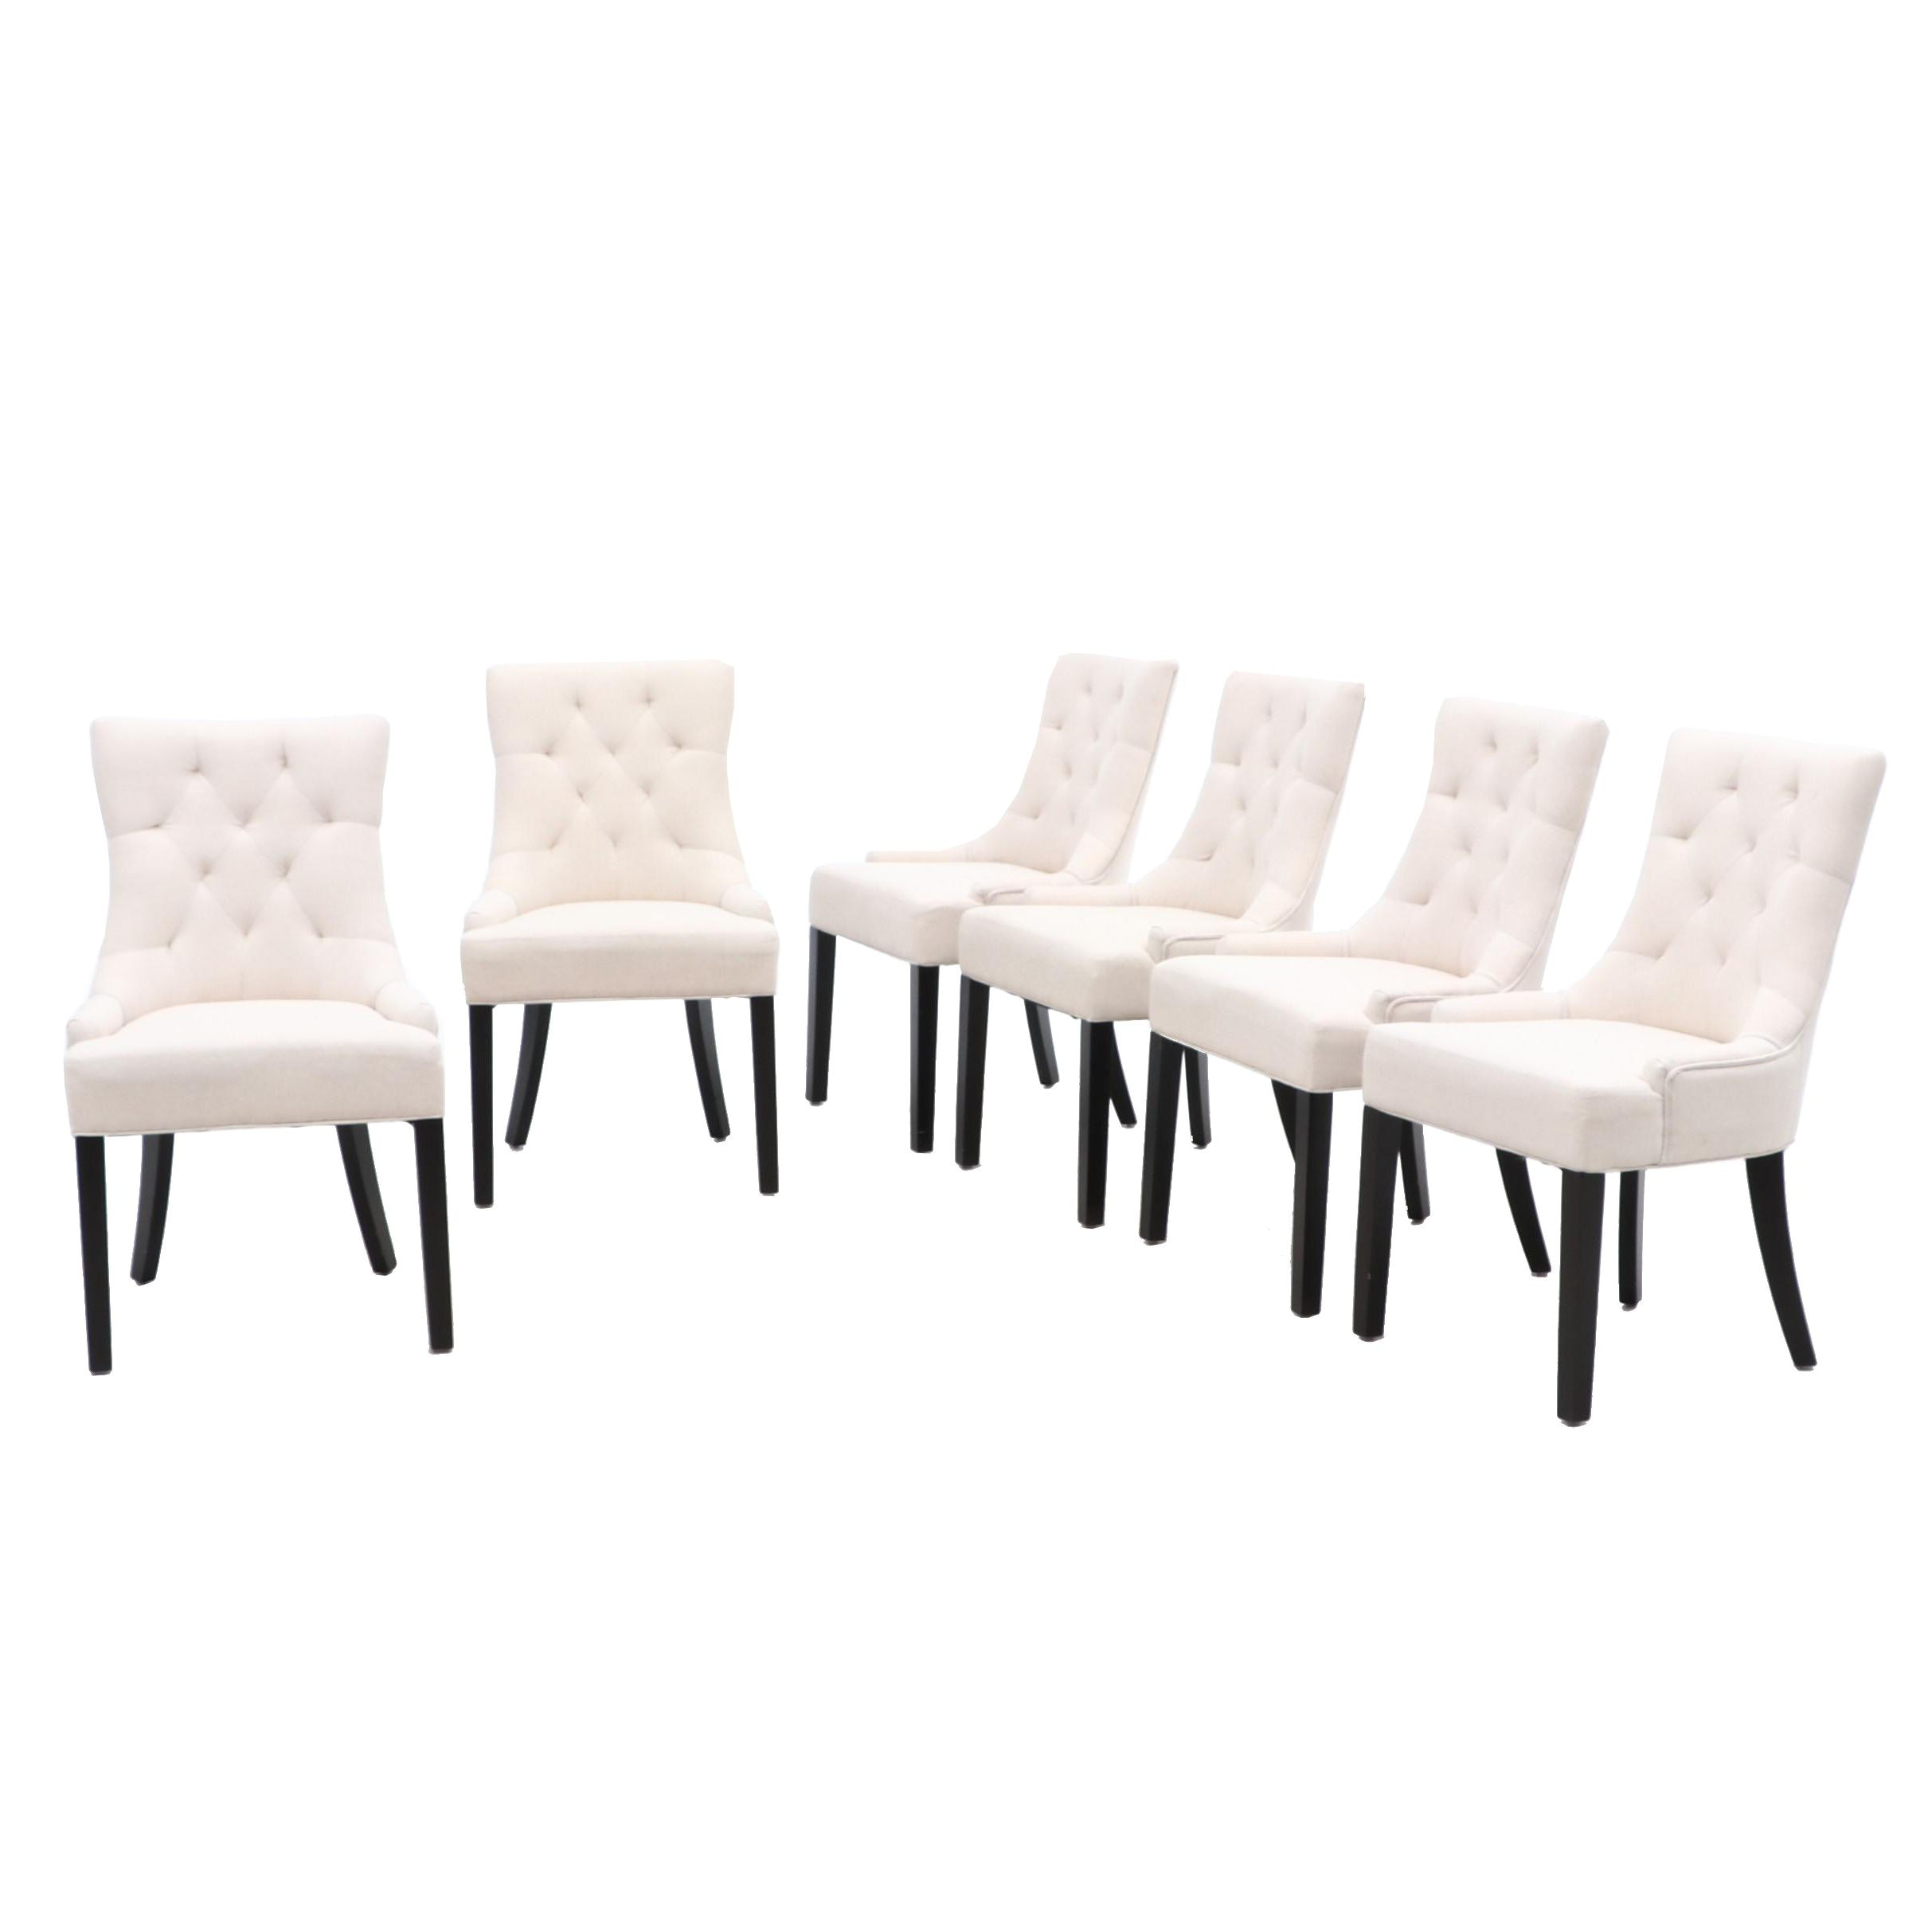 Button Tufted Side Chairs For Noble Home Furnishings in White